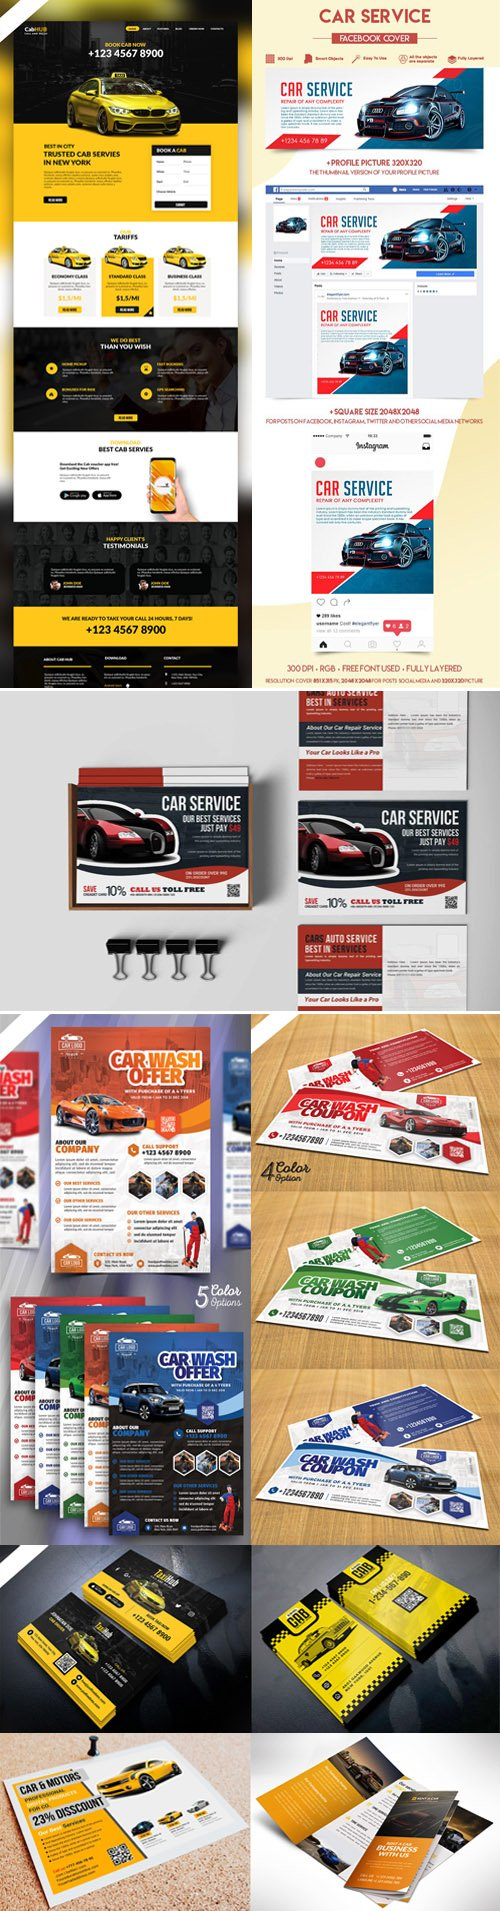 Collection of Cars Services PSD Templates